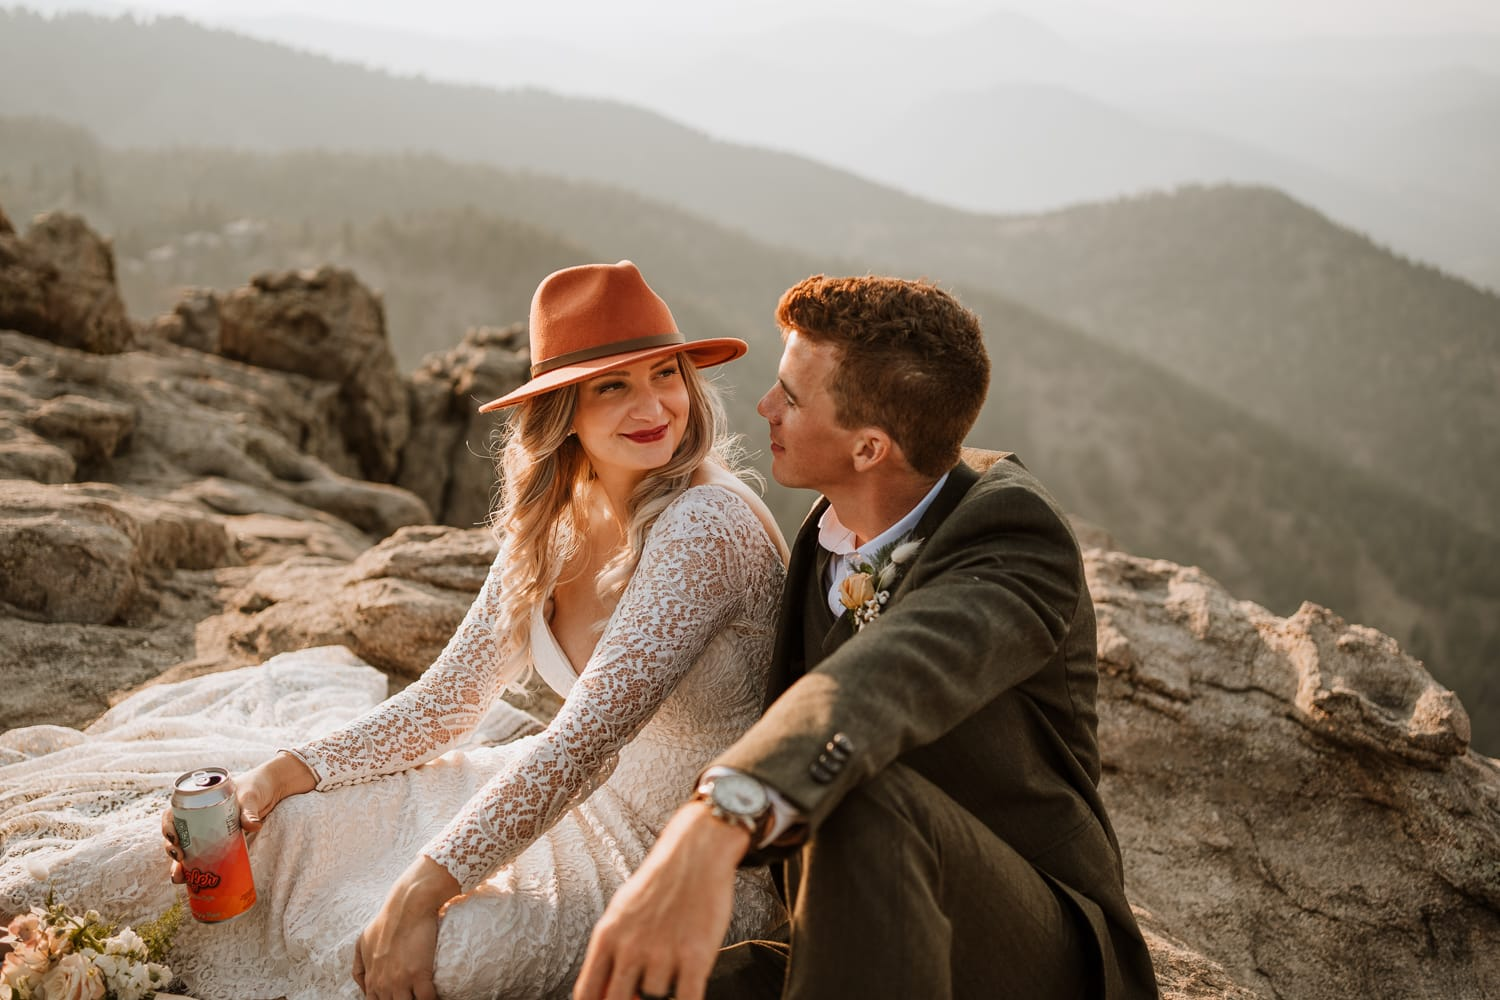 Bride and groom stare into each other's eyes and smile as they drink beer on a mountain top at sunset